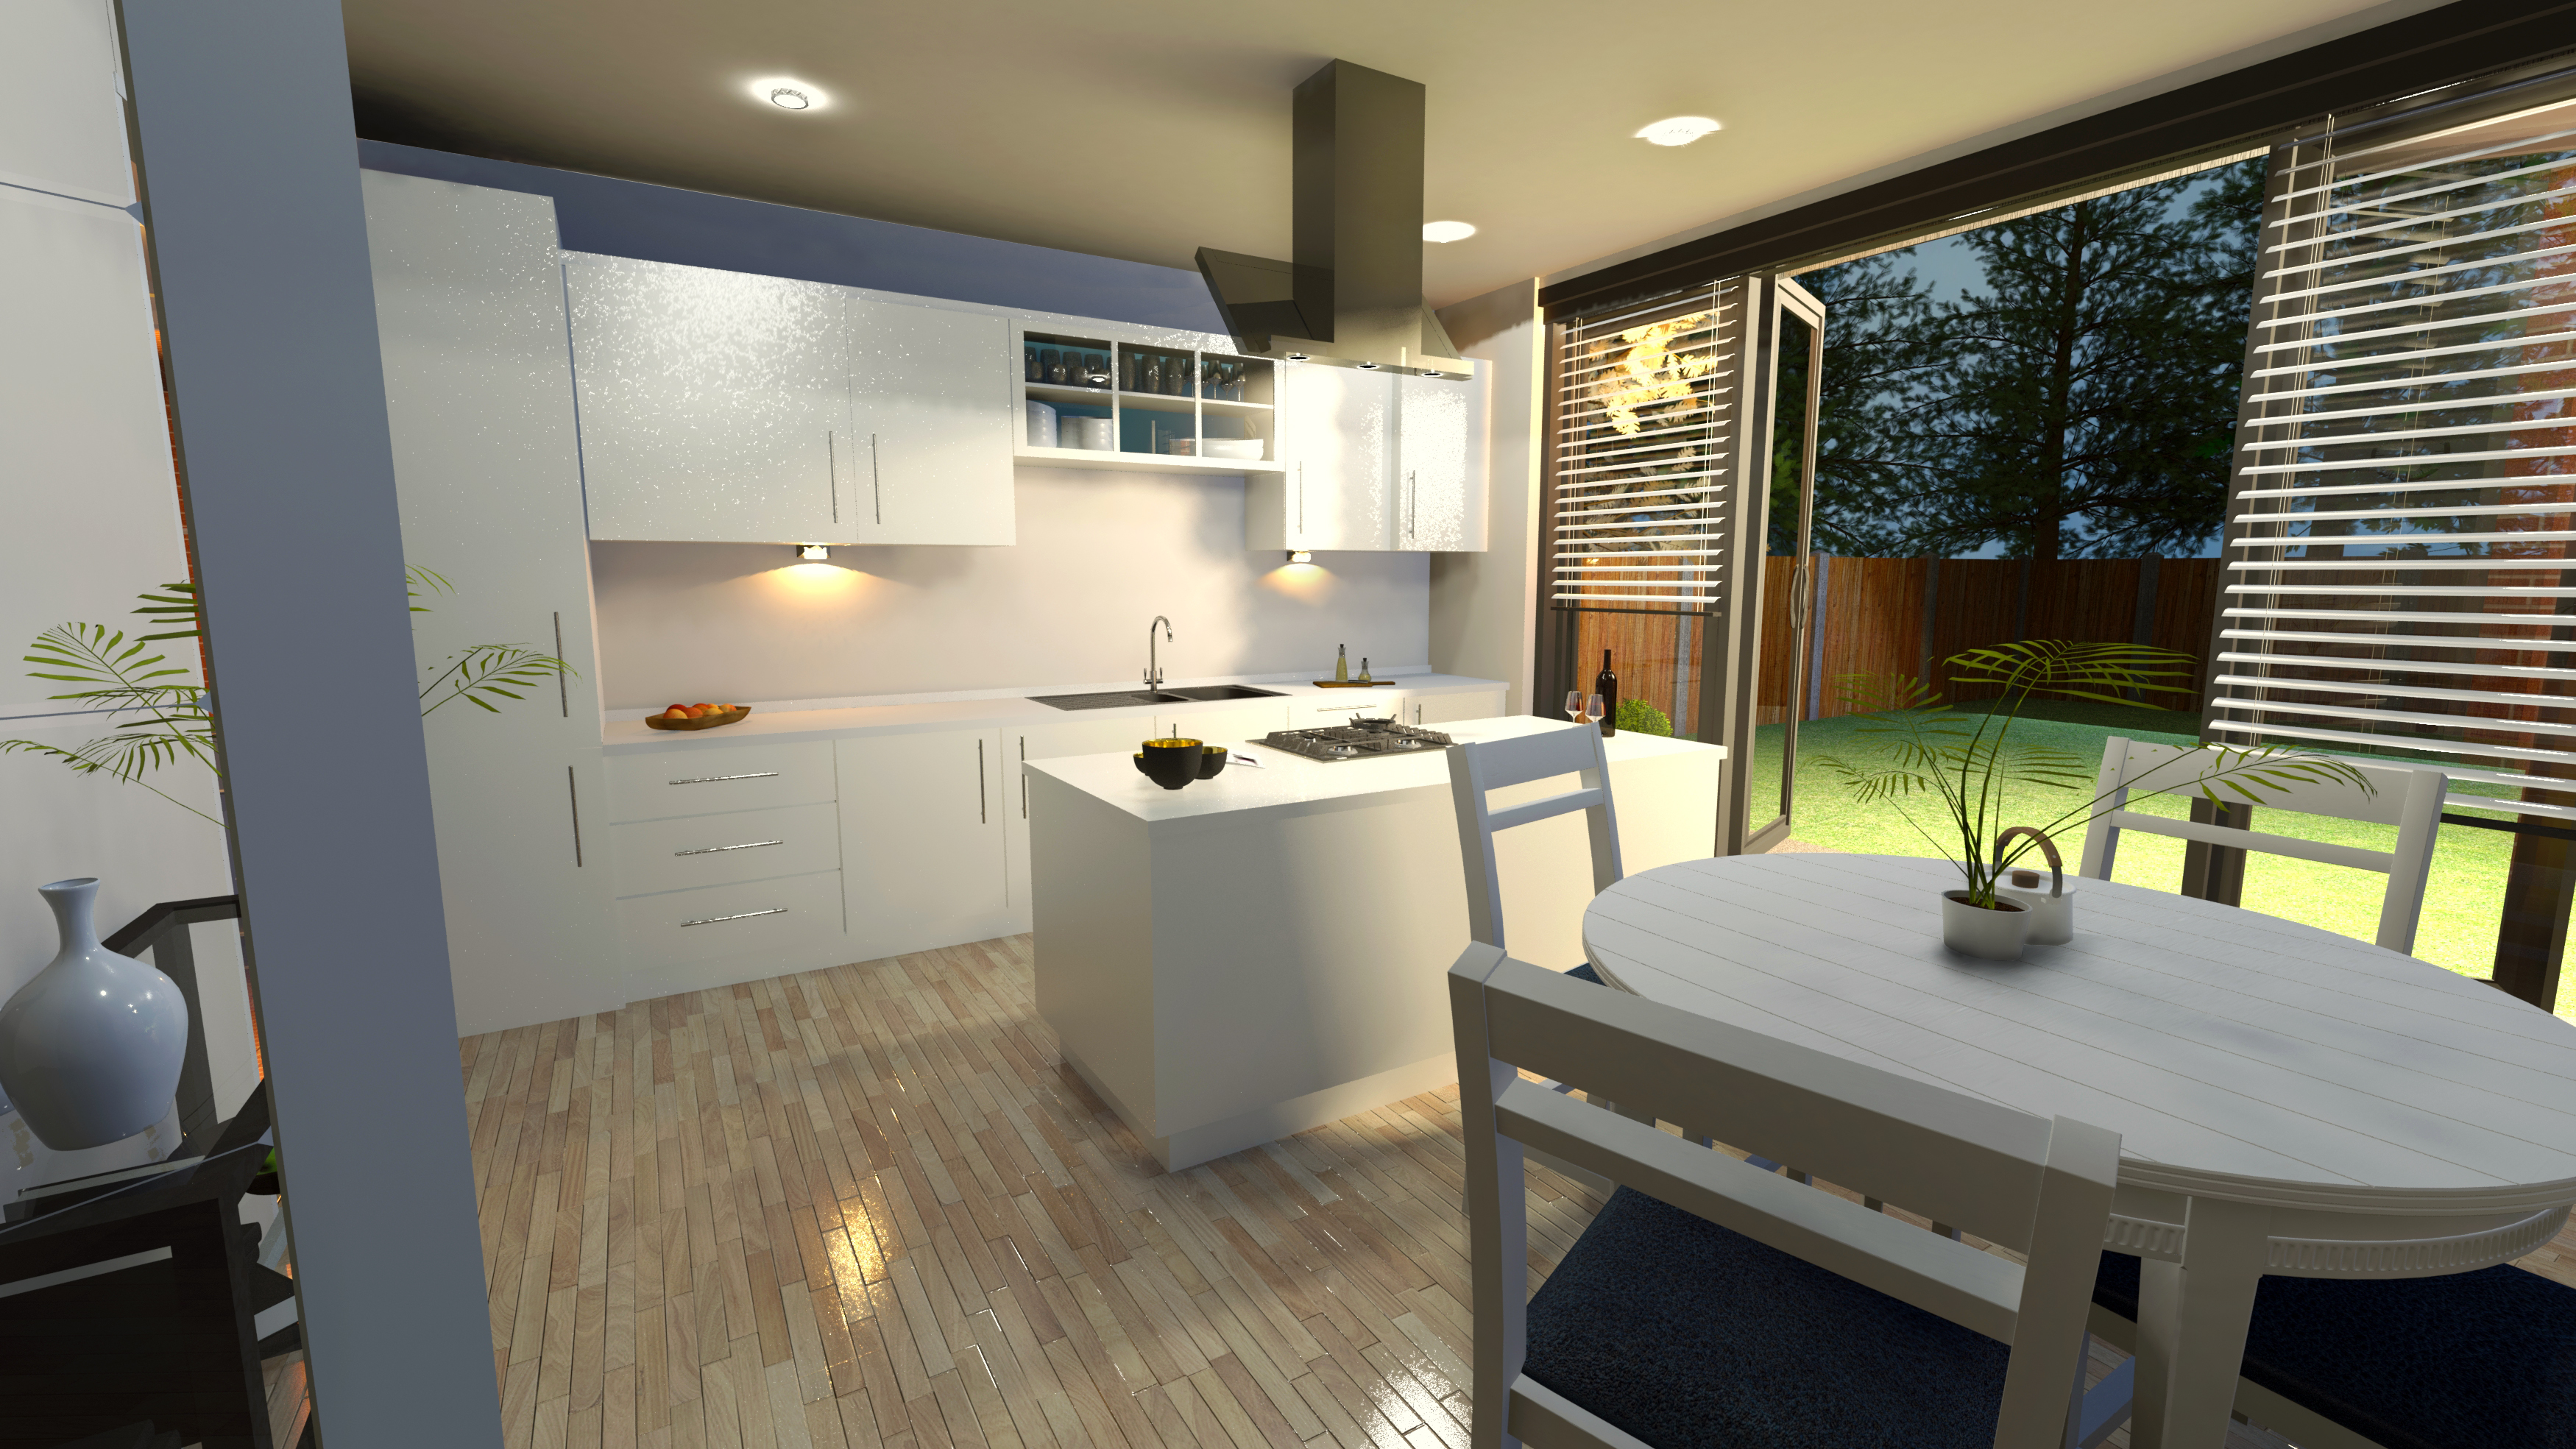 Kitchen render Final HD PS